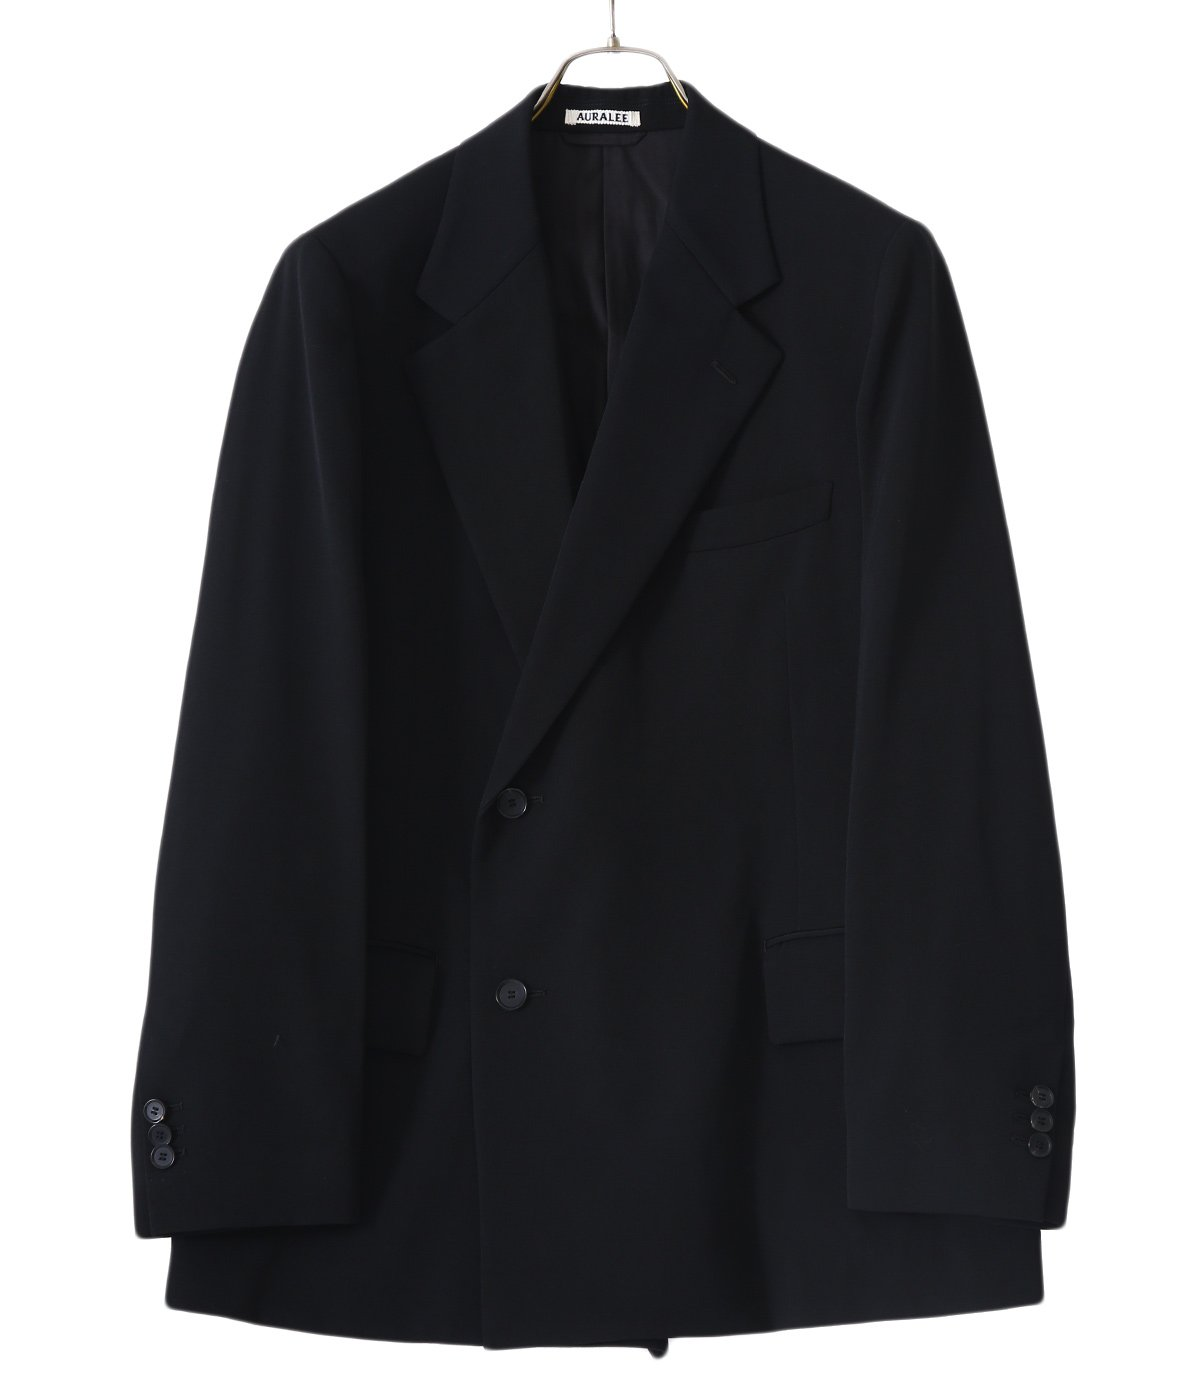 WOOL MAX GABARDINE DOUBLE-BREASTED JACKET